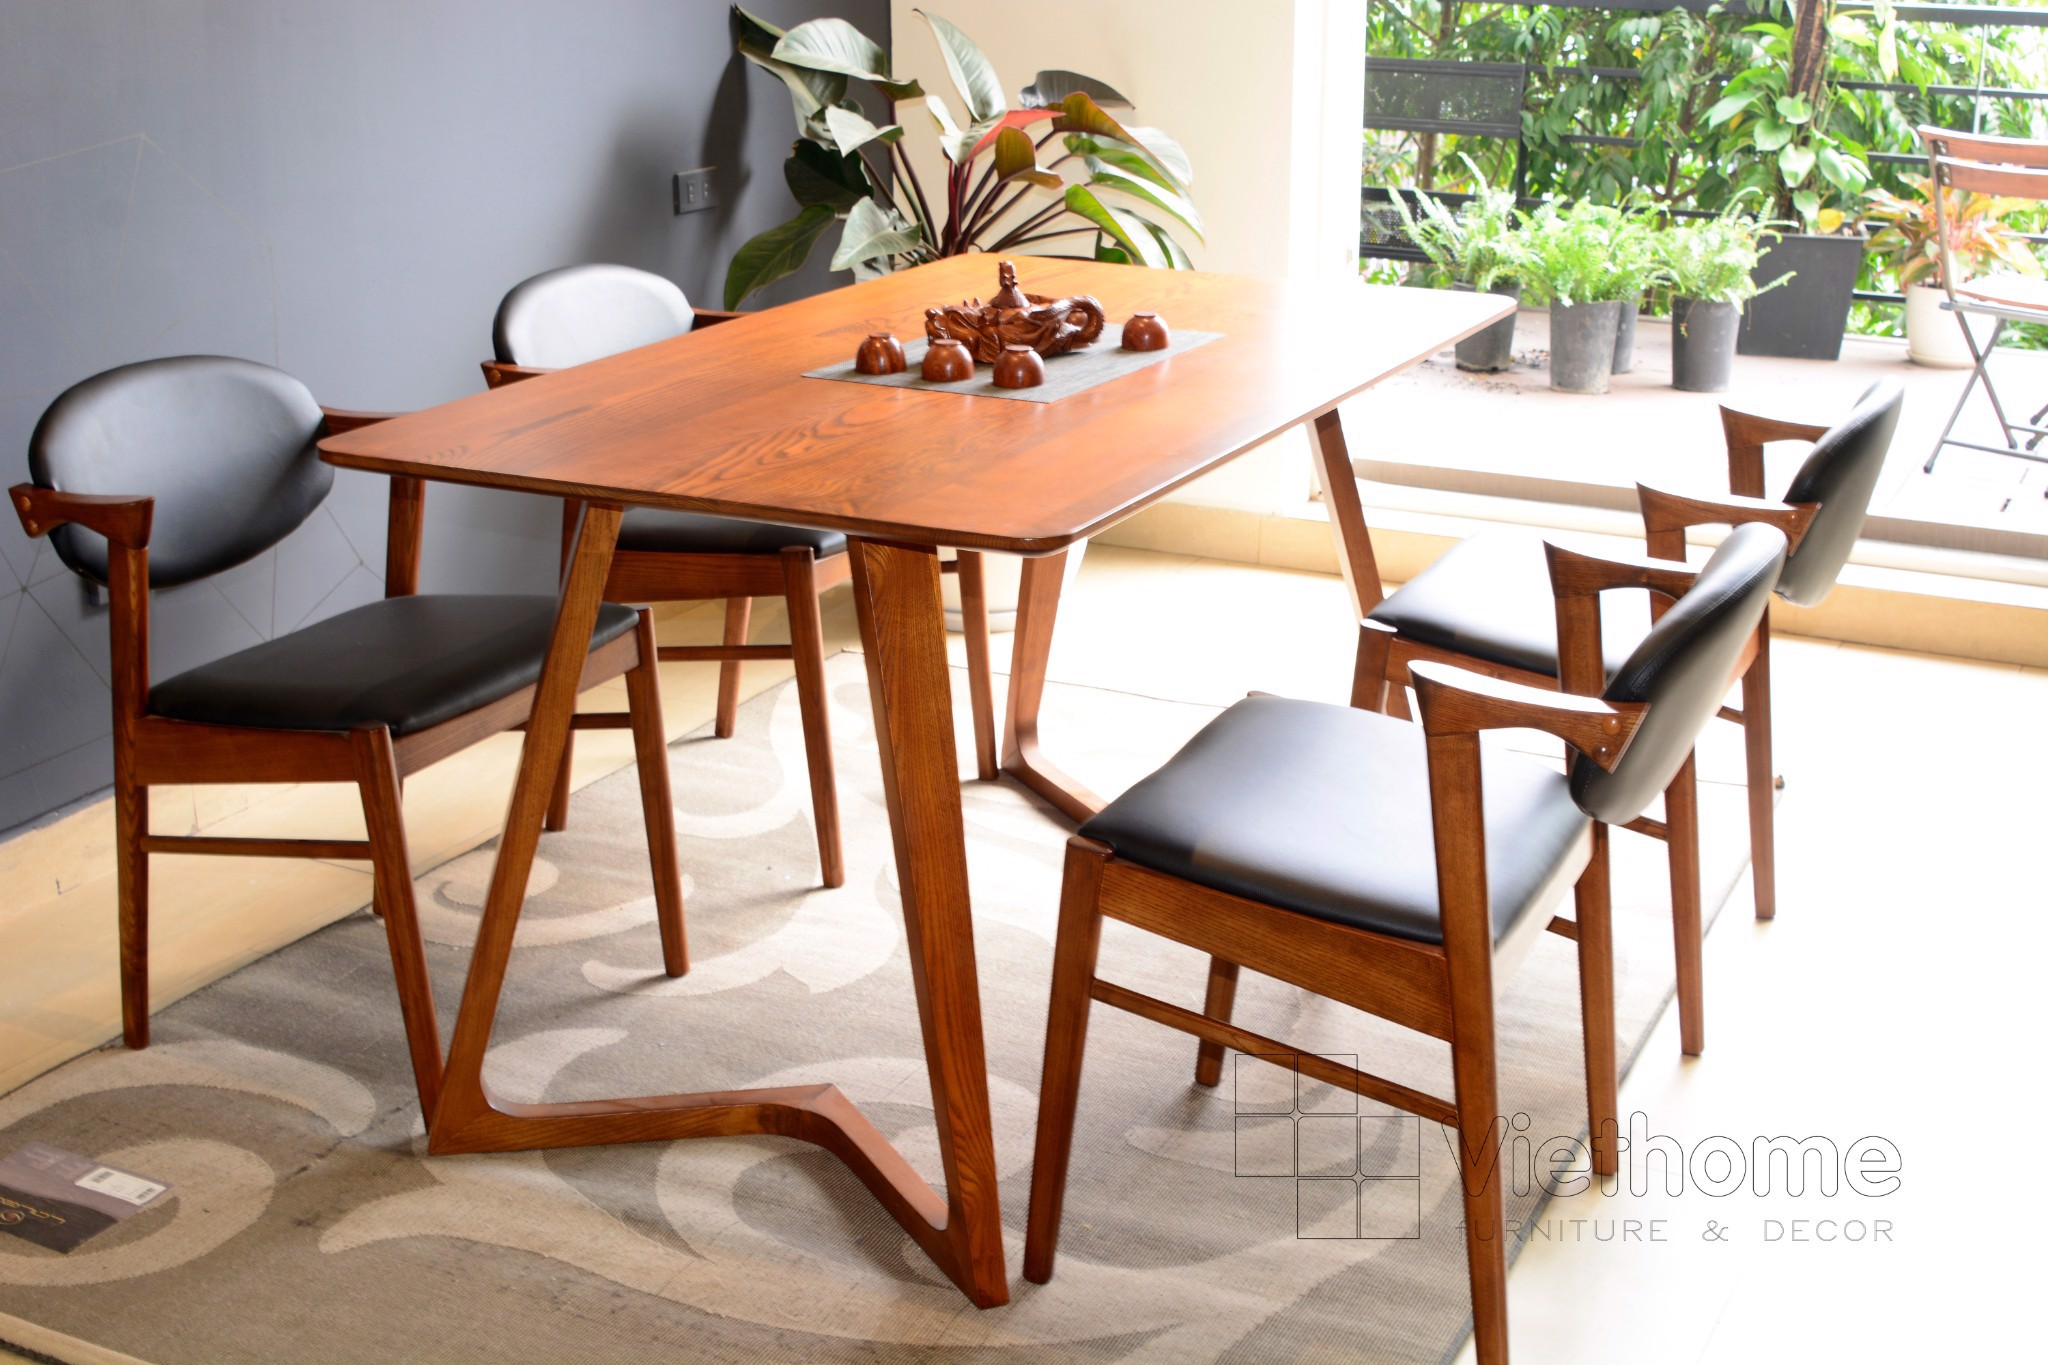 SET TTORE CHAIR & TABLE